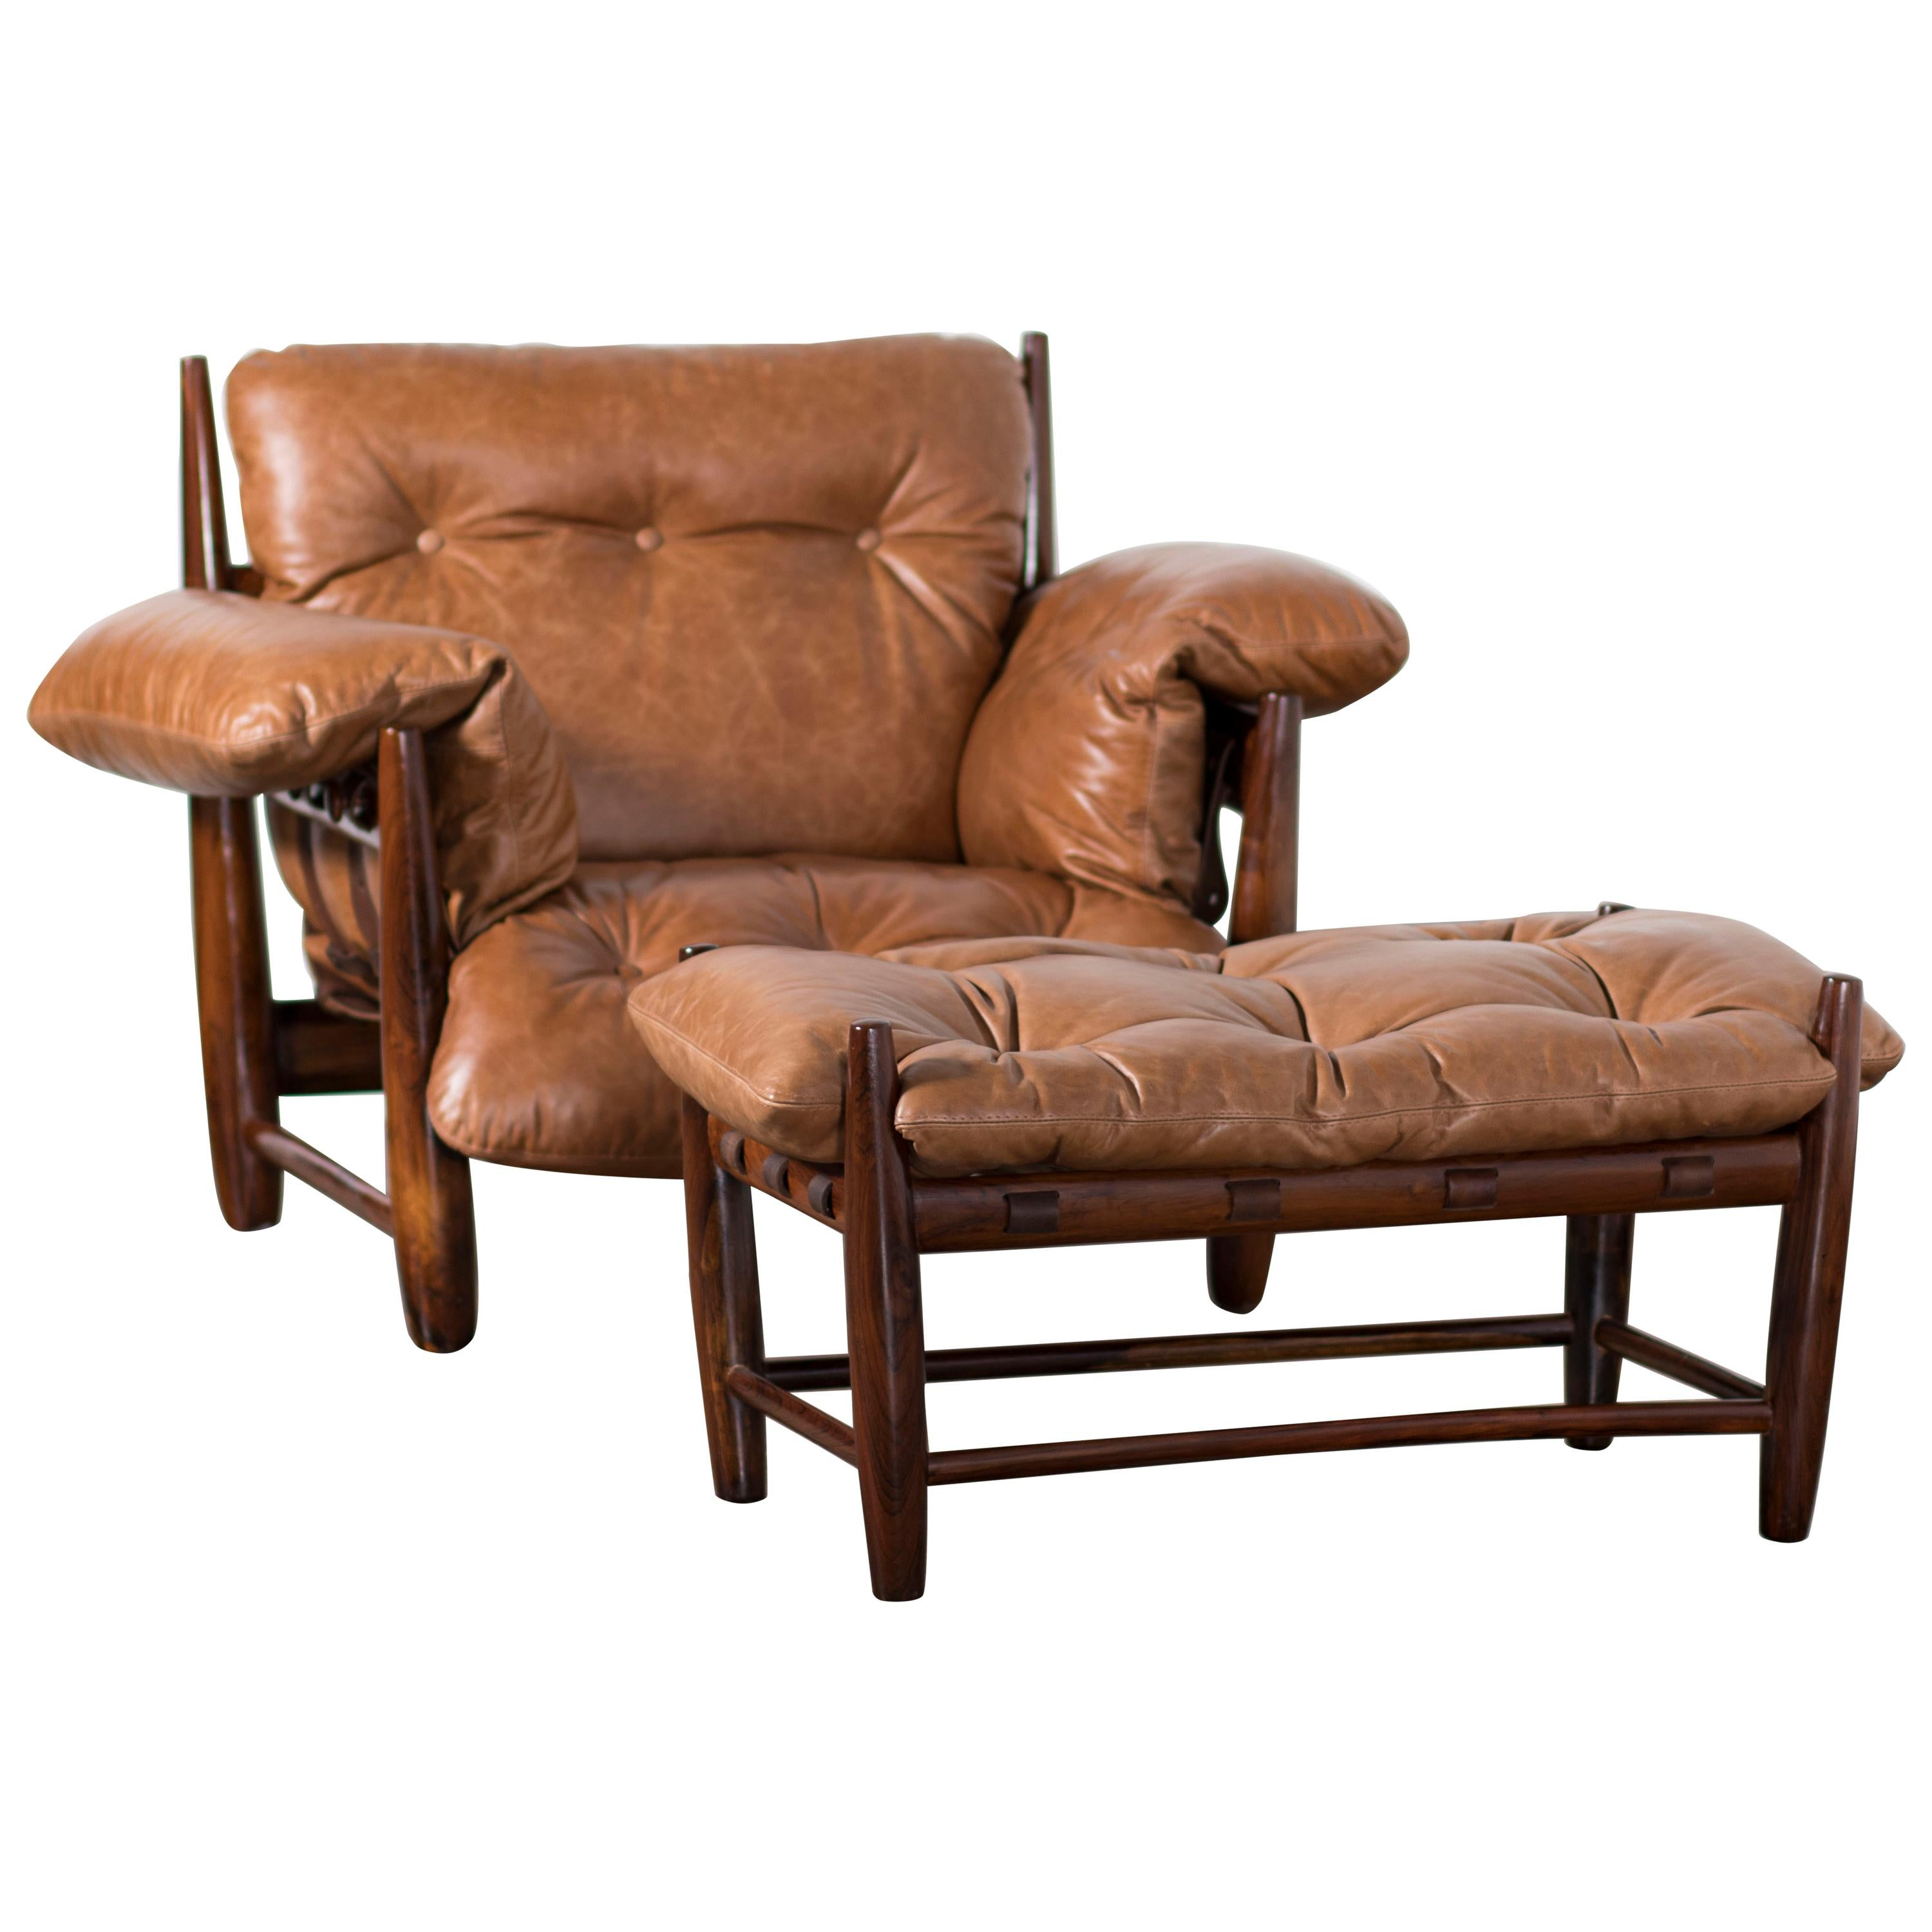 armchair meaning ethan allen hitchcock chairs vintage mole with ottoman by sergio rodrigues for sale at